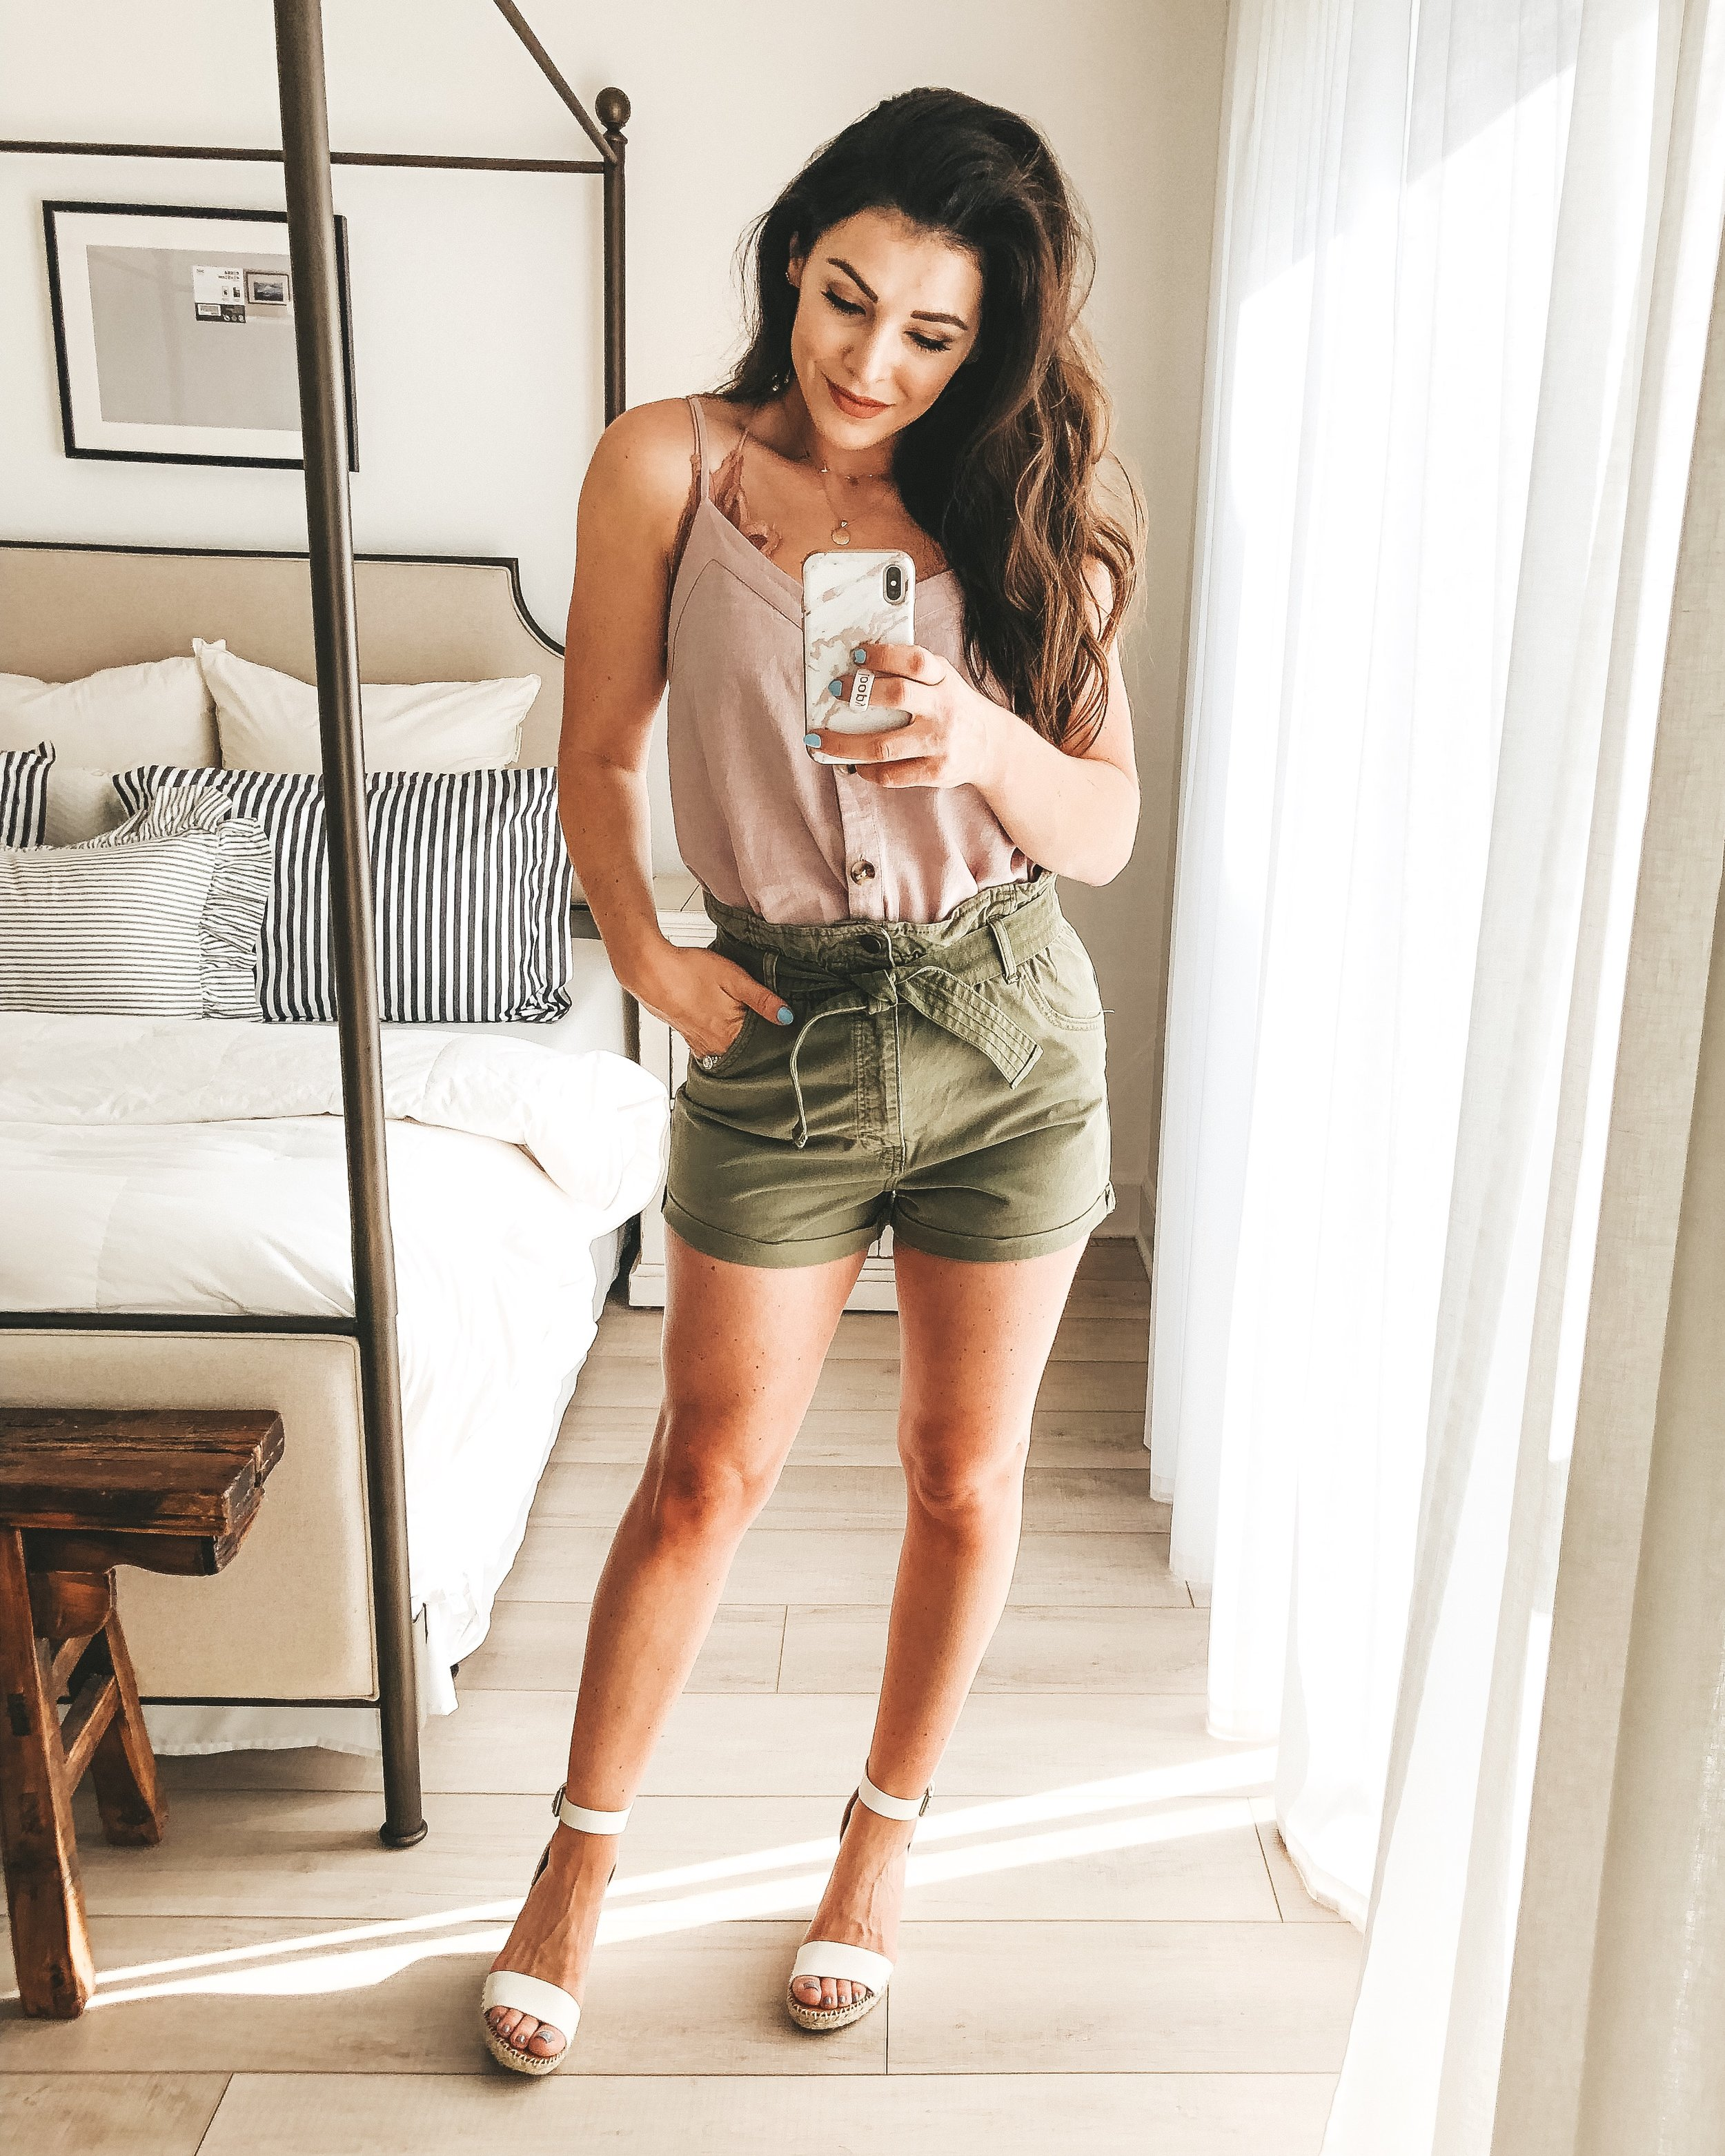 Abercrombie belted twill shorts, button-front linen blend cami, Free People adella bralette, and Dolce Vita Noor wedge sandals.